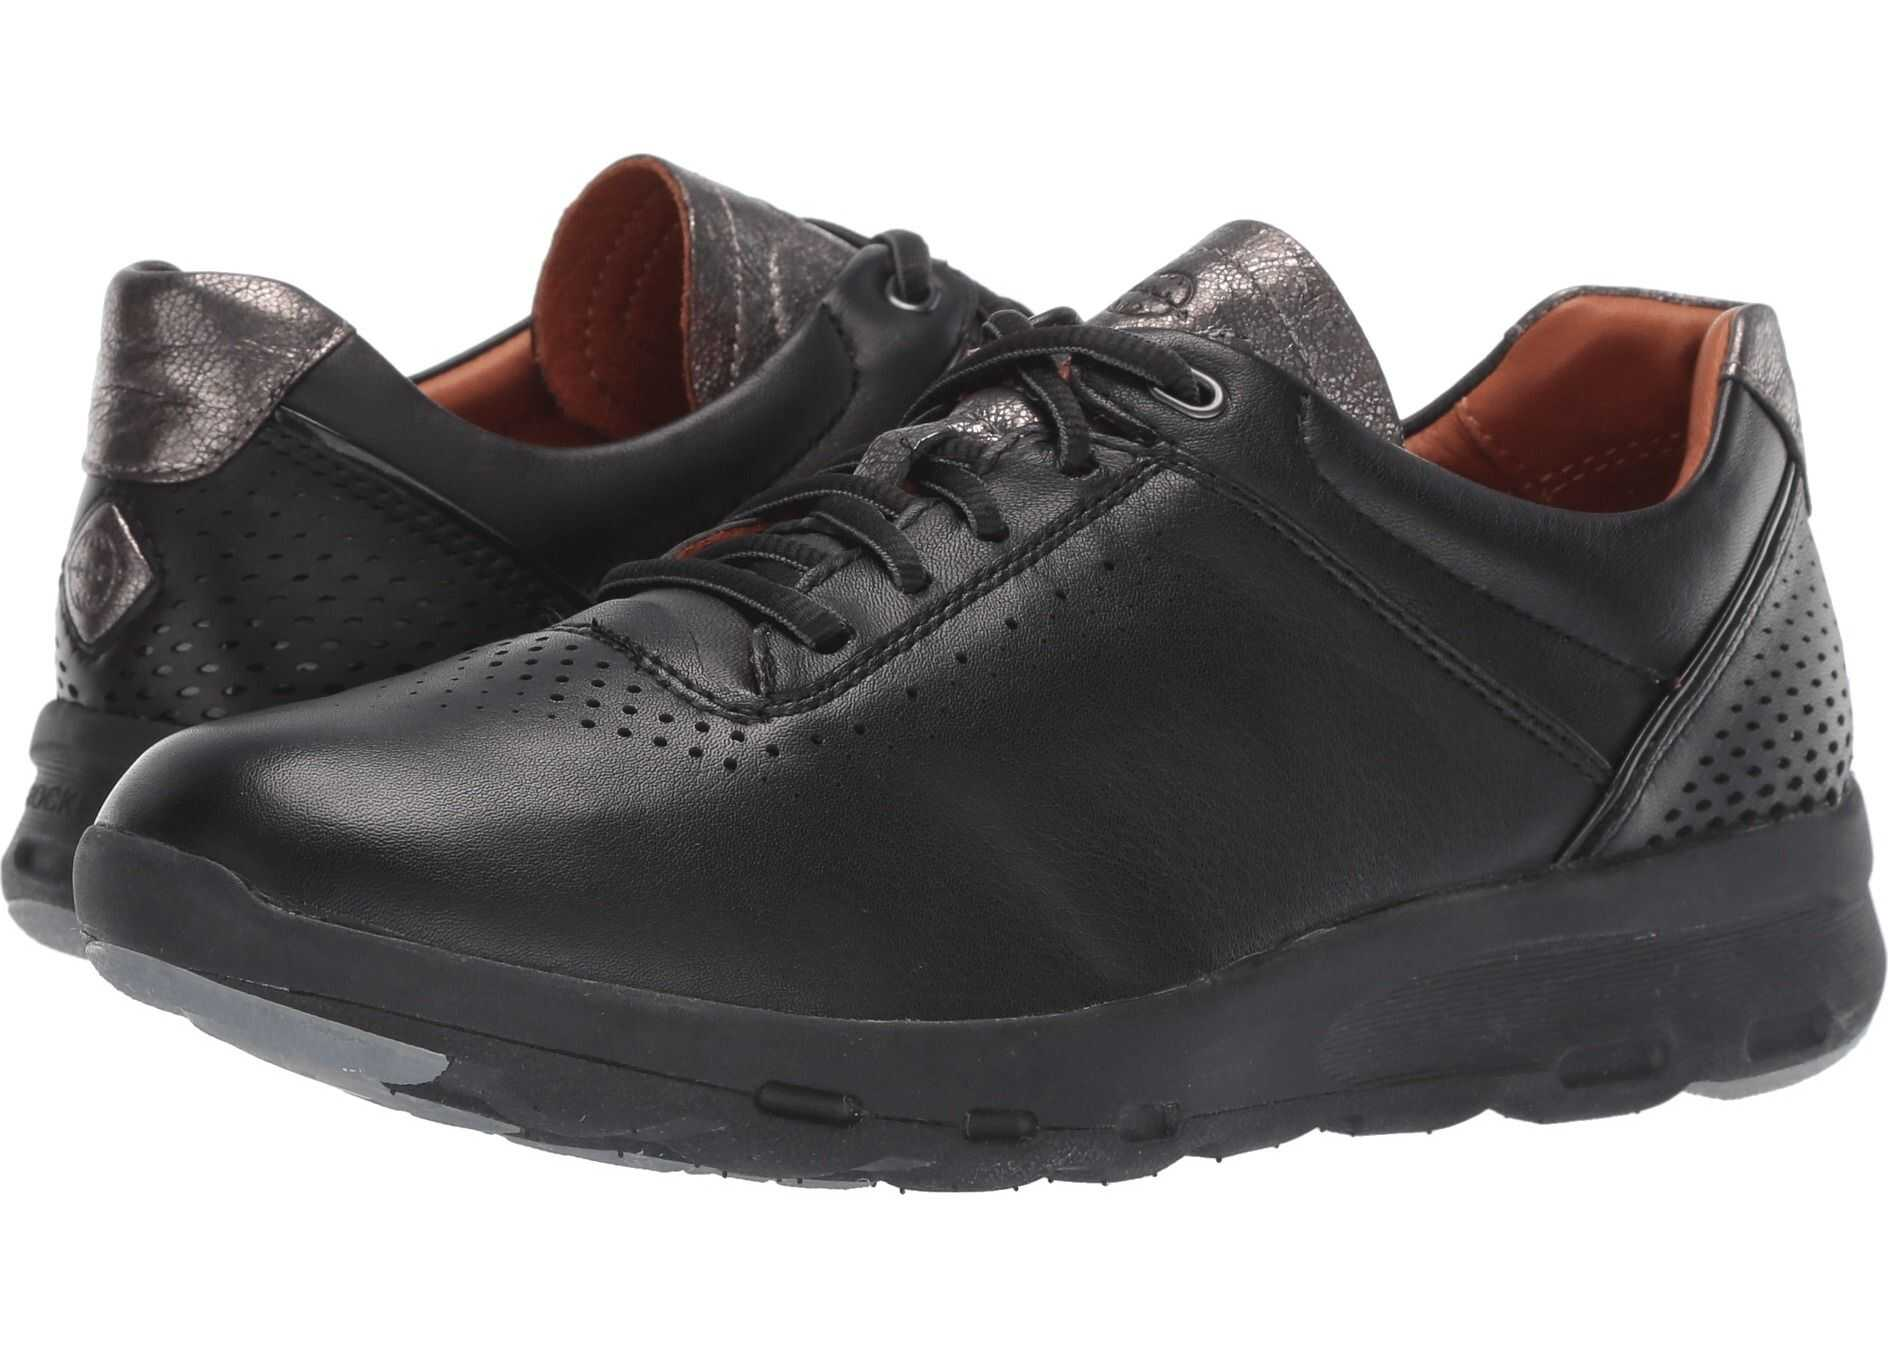 Rockport Let's Walk Ubal Black/Black Leather